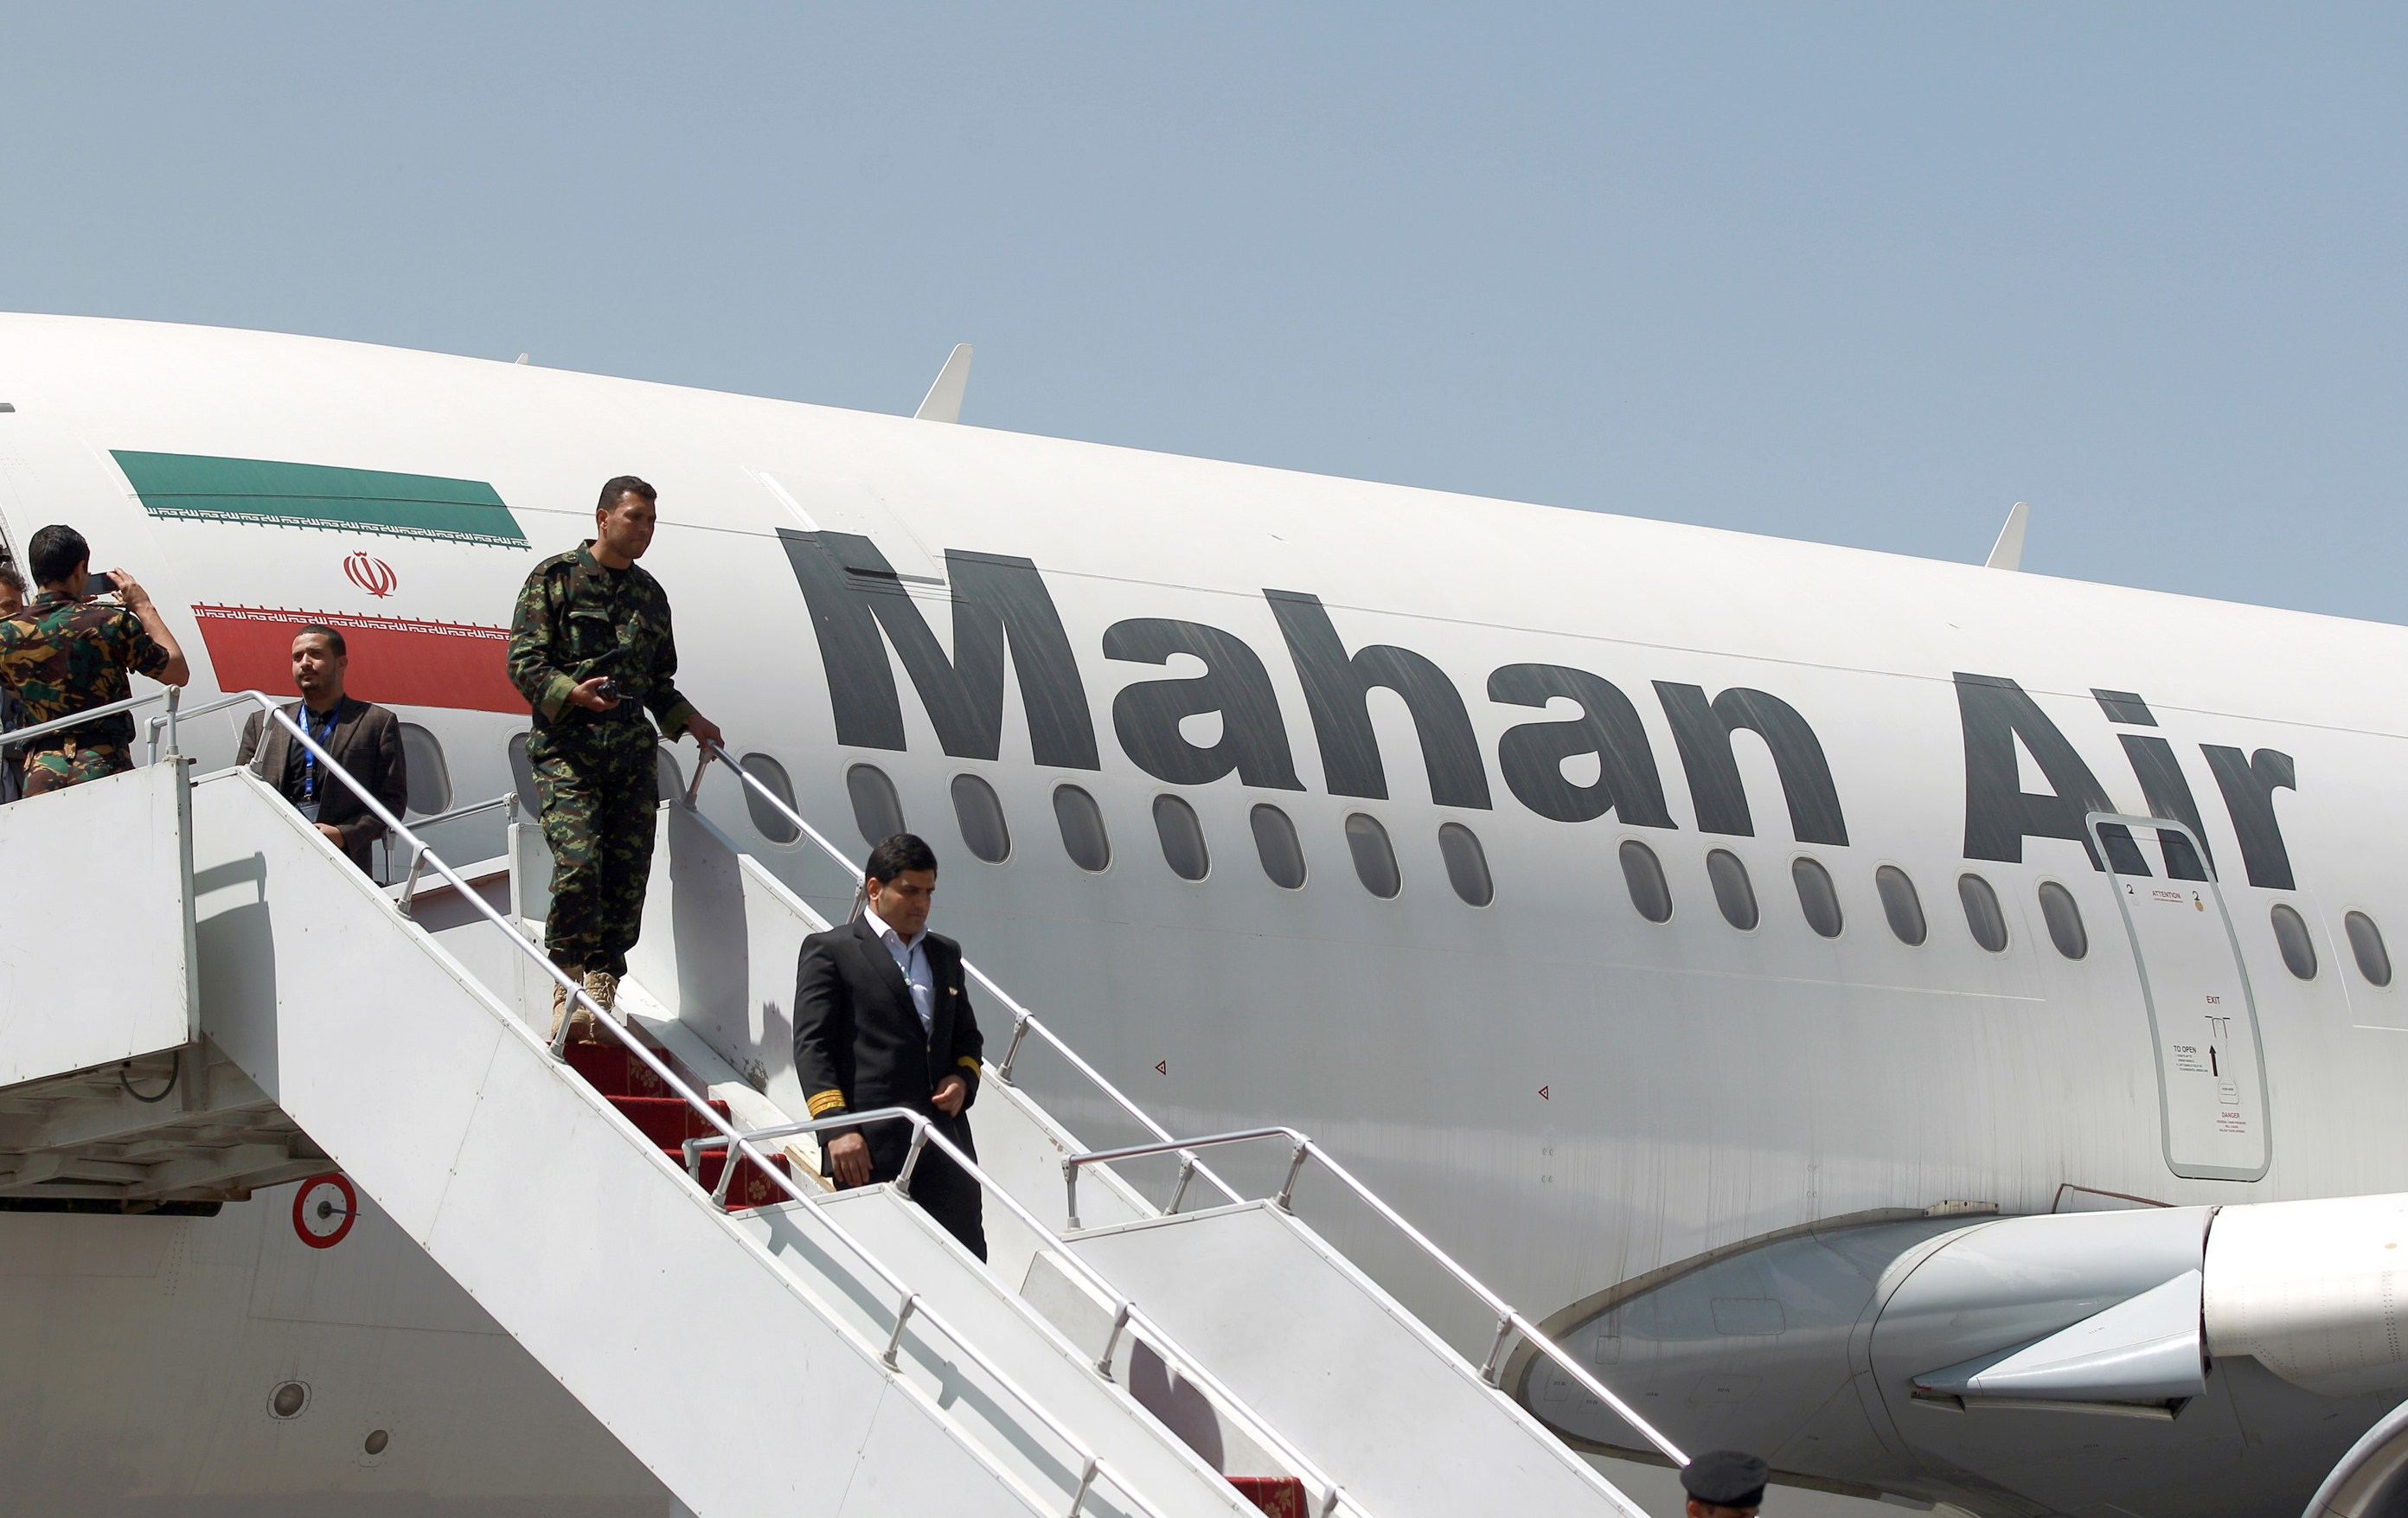 """An airplane of Mahan Air sits at the tarmac after landing at Sanaa International Airport in the Yemeni capital on March 1, 2015 a day after officials from the Shiite militia-controlled city signed an aviation agreement with Tehran. Western-backed President Abedrabbo Mansour Hadi, who fled last weekend an effective house arrest by the Huthis in Sanaa, slammed the agreement as """"illegal,"""" according to an aide."""